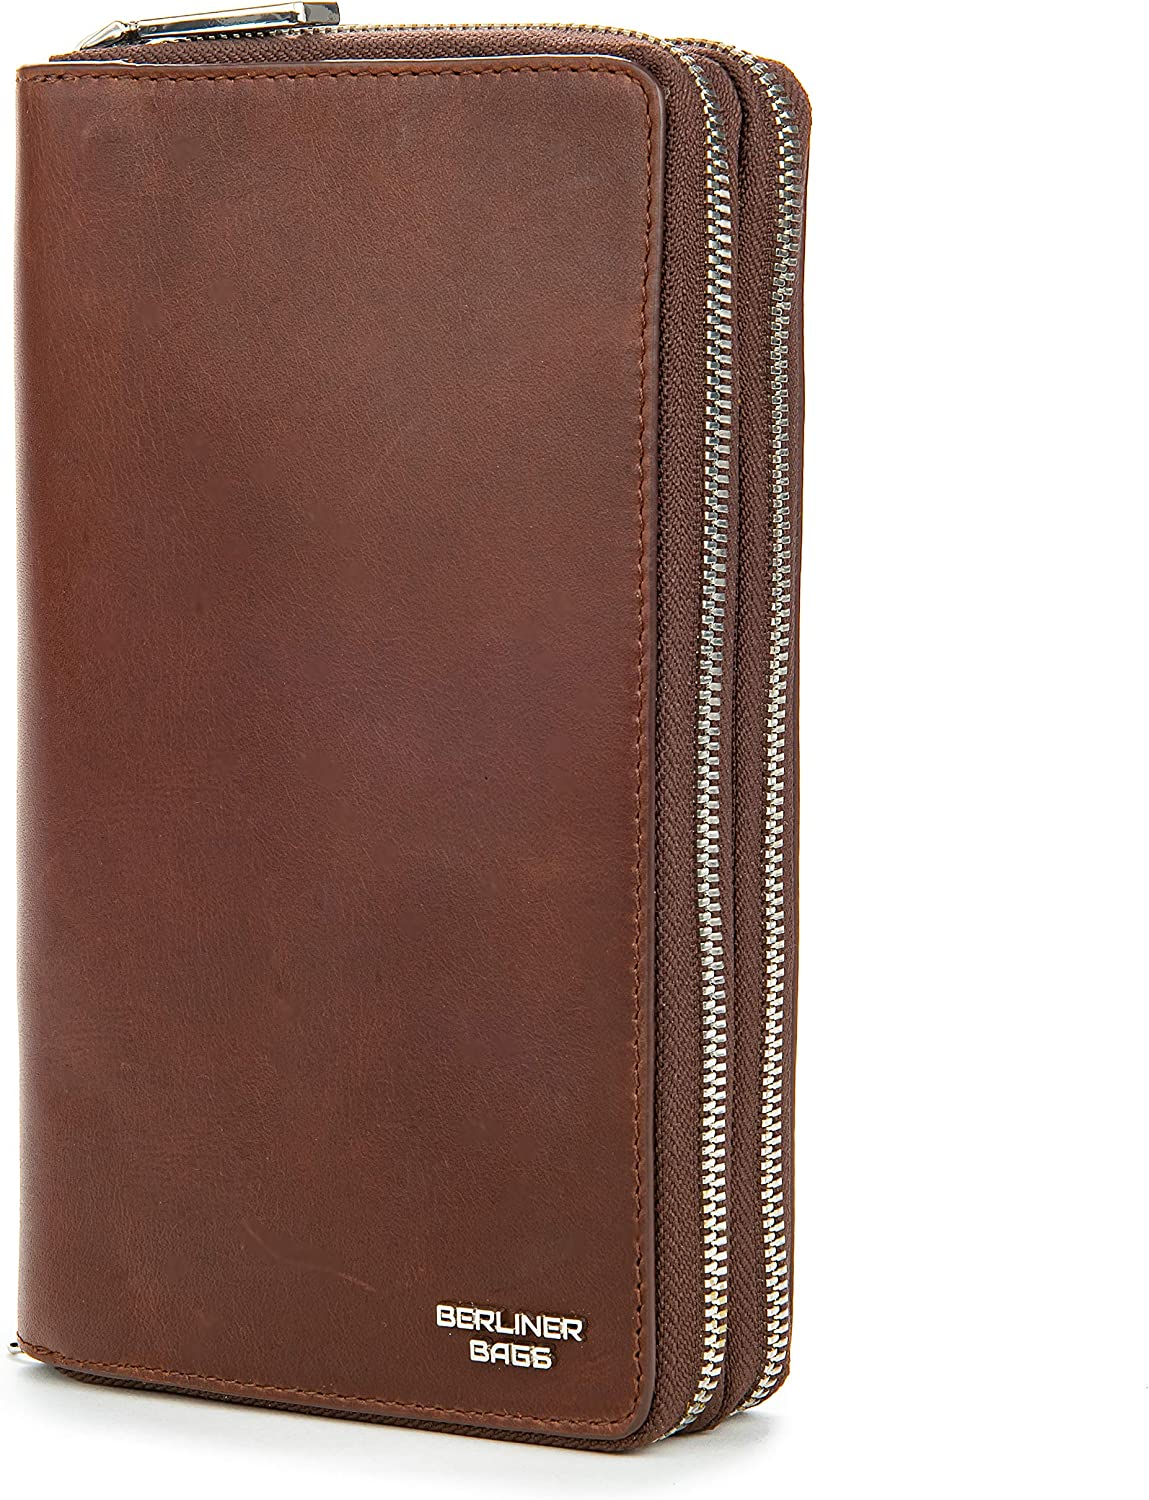 Berliner Bags Premium Leather Free shipping New Wallet Long Beach Mall XL RFID Protective Dallas